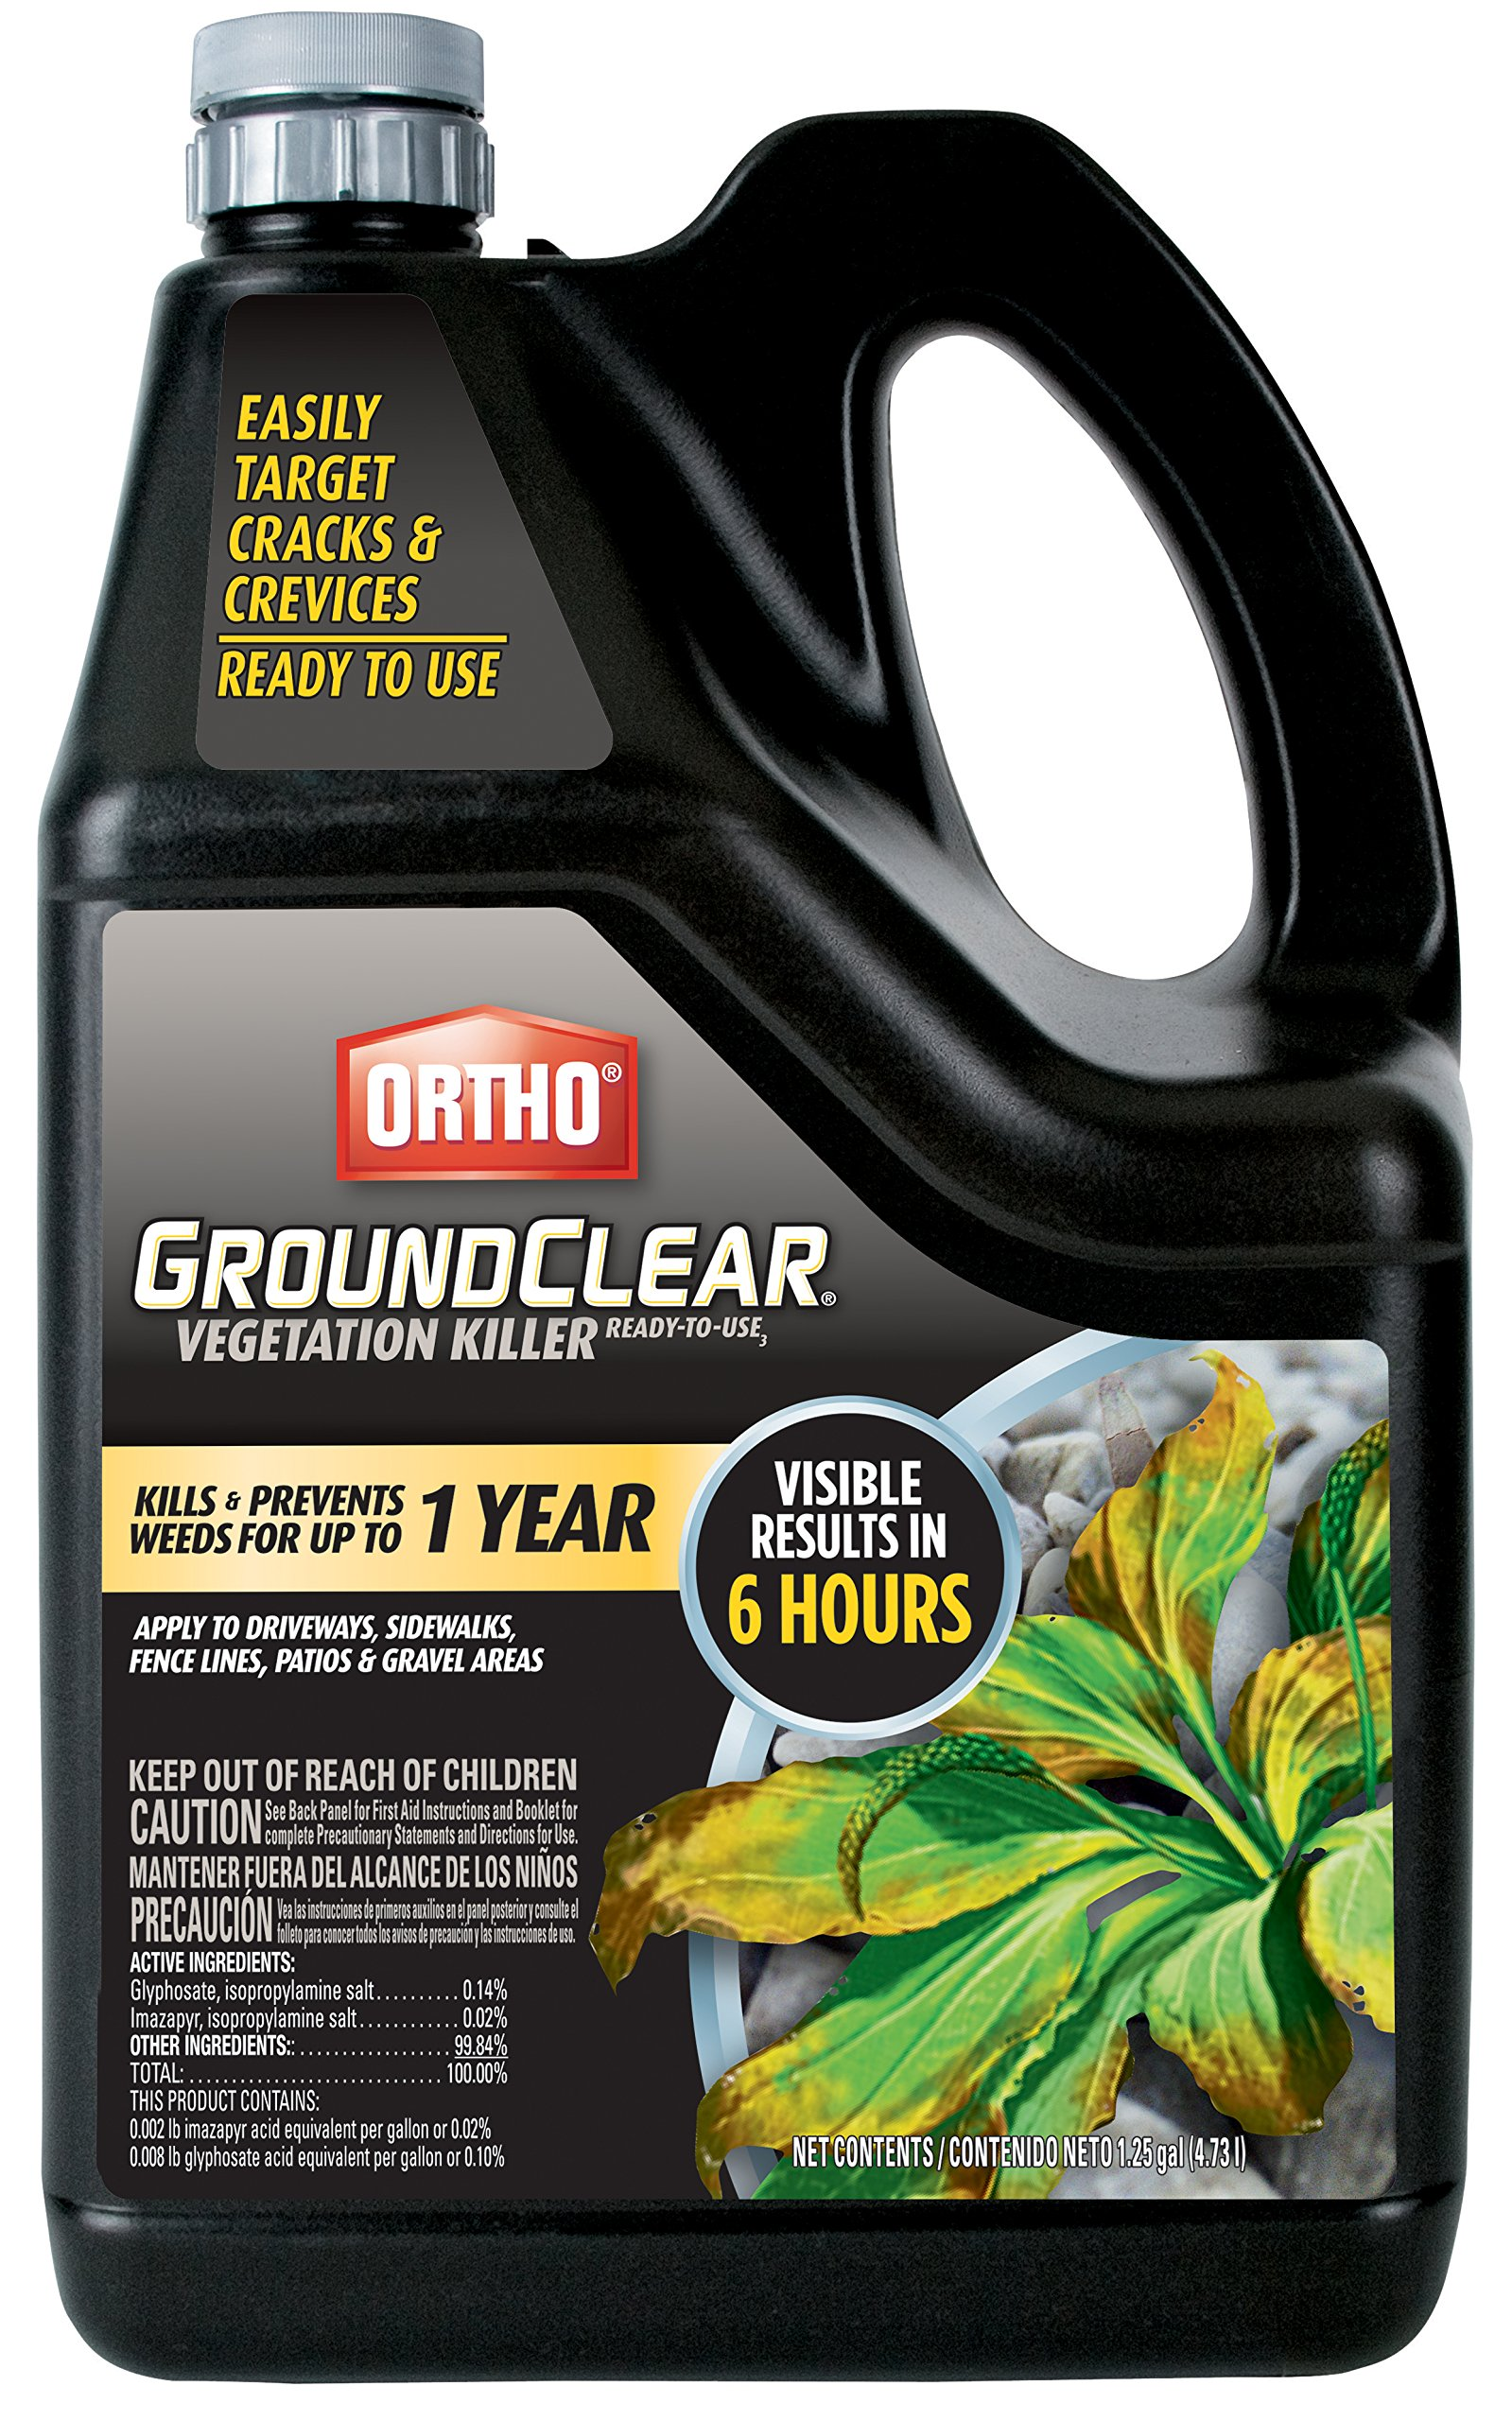 Ortho 0436604 Ground Clear Vegetation Killer Ready-to-Use Sprinkler Cap, 1.25 Gallon by Ortho